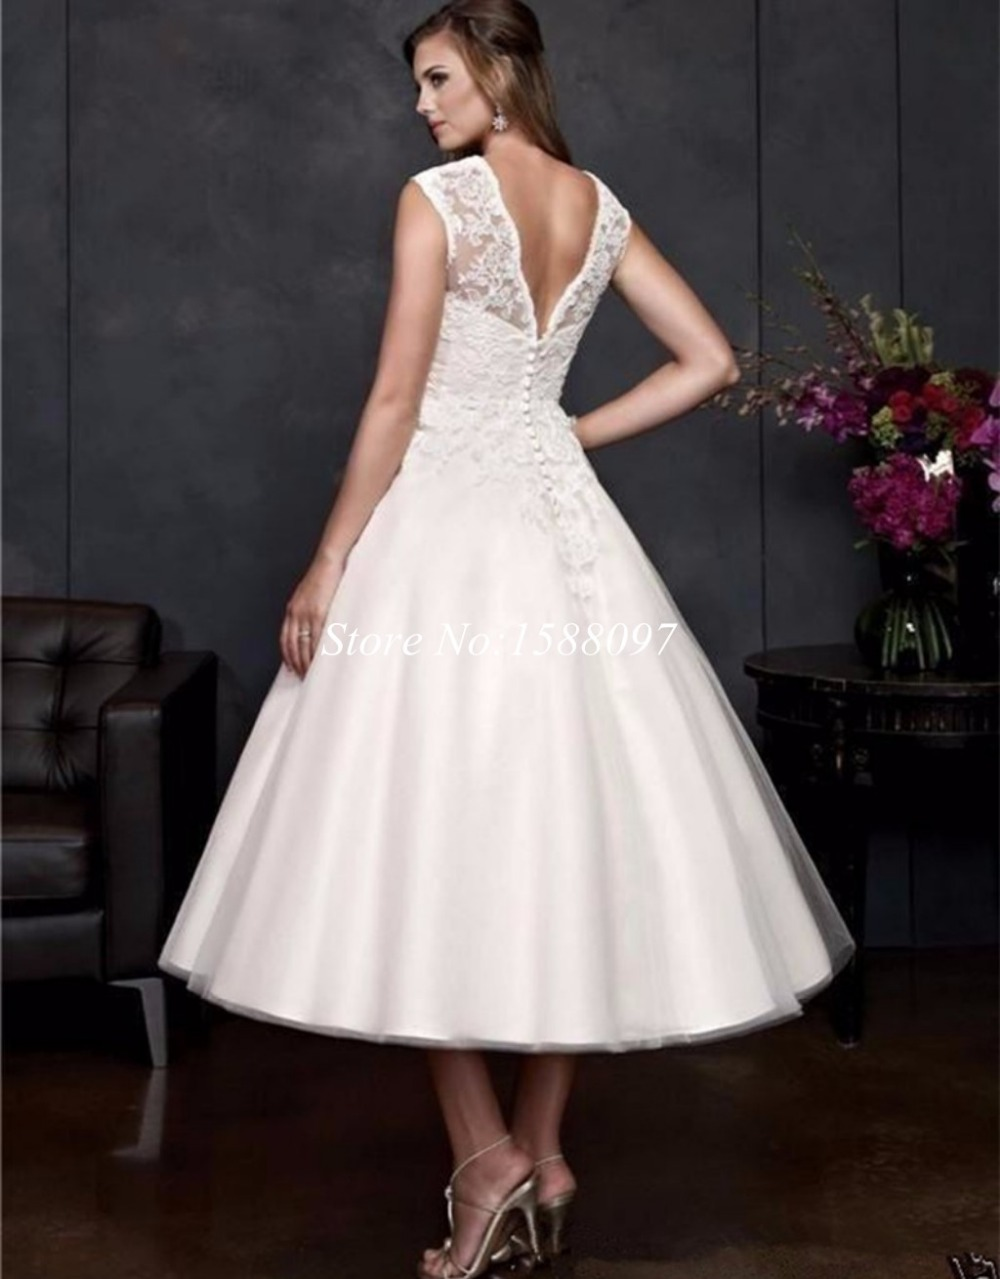 2015 New Ivory Wedding Dresss Short Vintage Lace Covered Dress Prince A Line Tea Length Bridal Under 100 In Dresses From